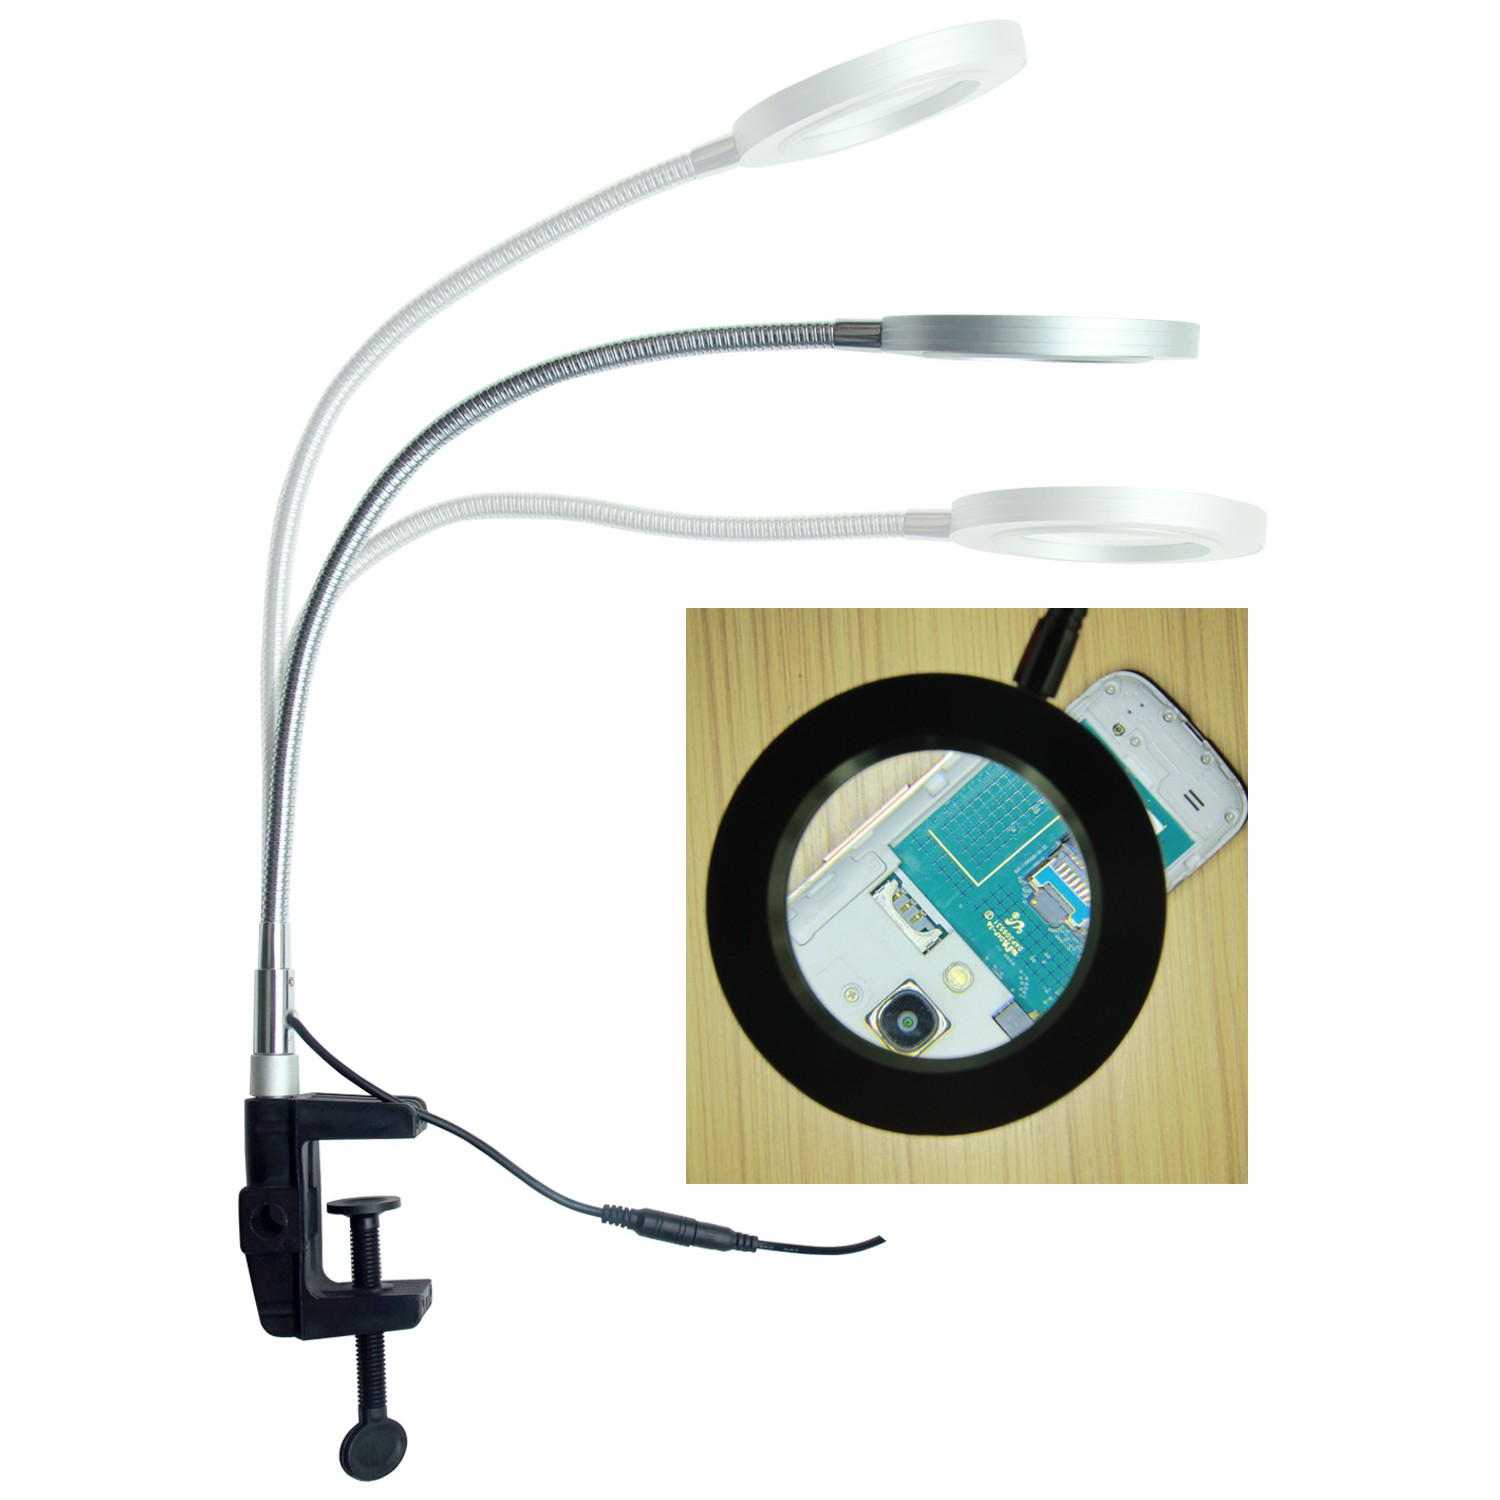 Tabletop Magnifying Glass with Adjustable Gooseneck Arm and LED Light